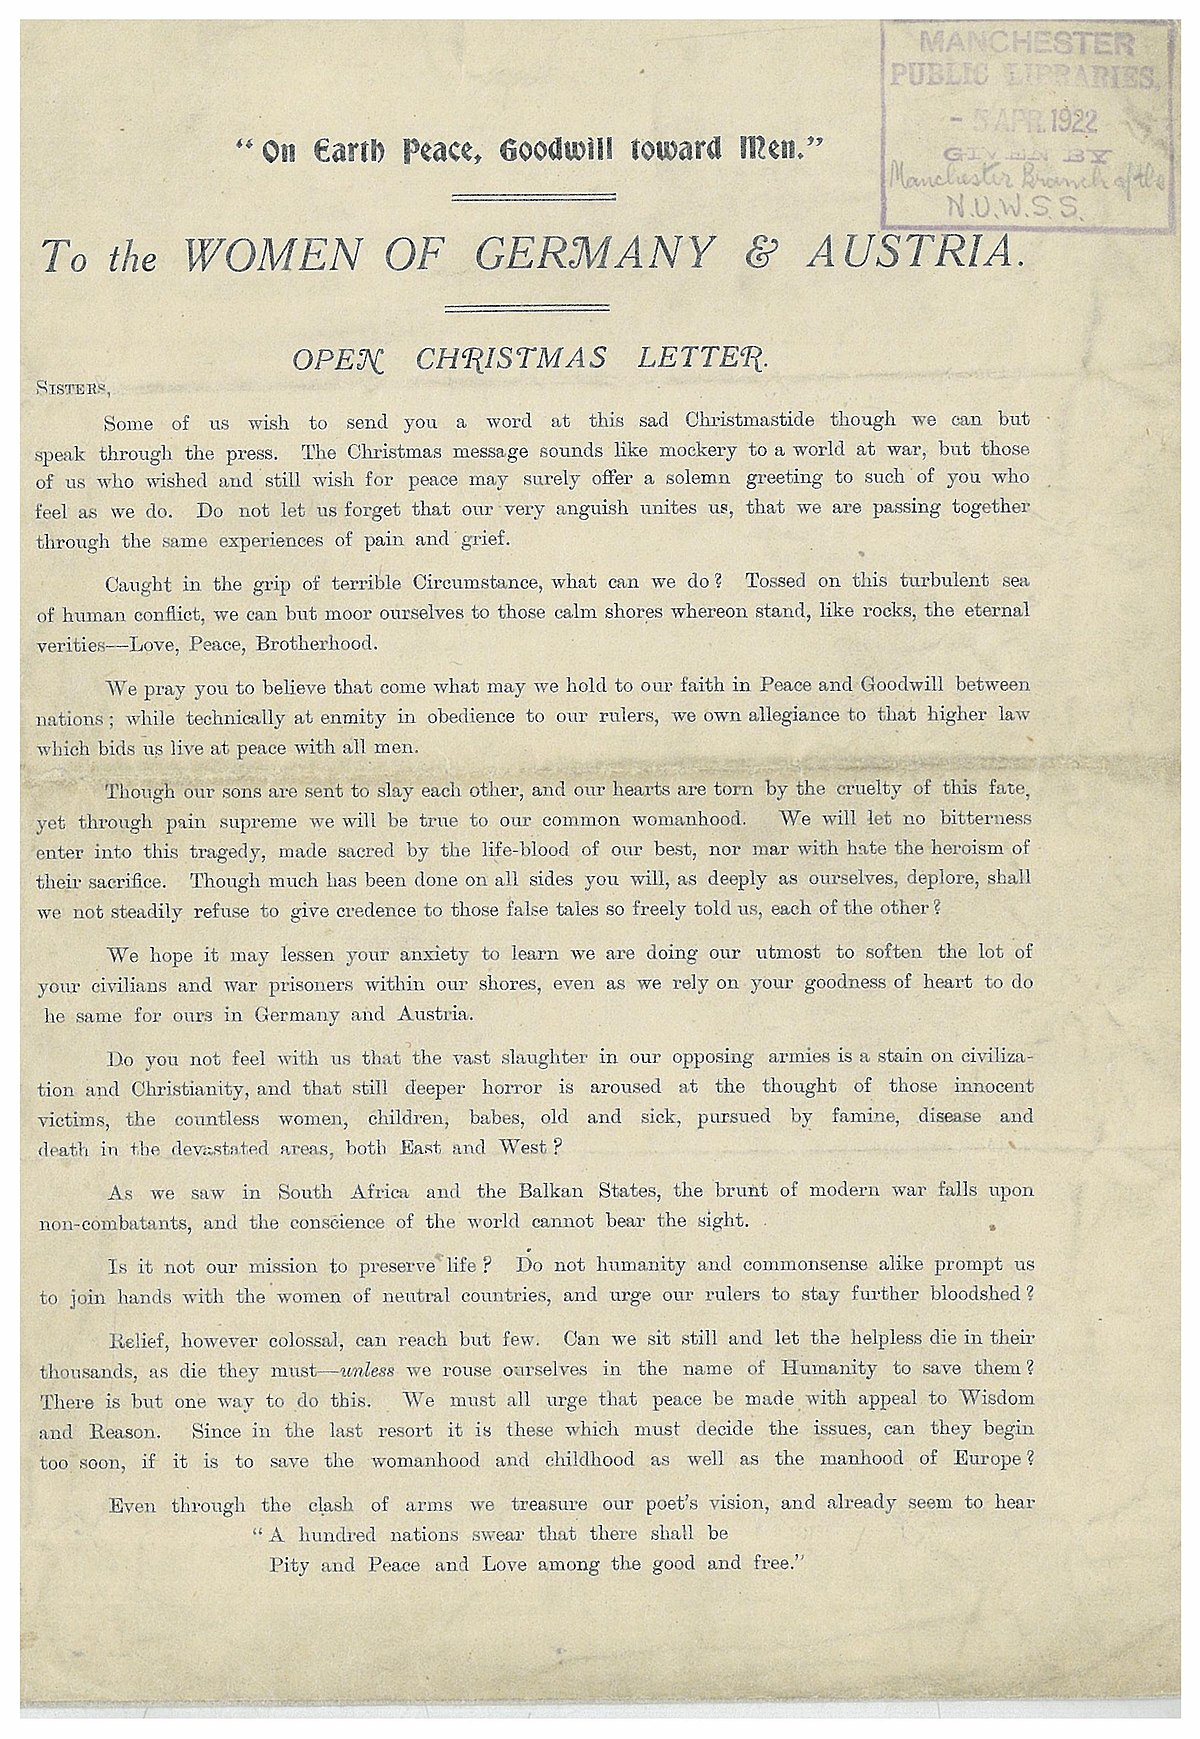 Open Christmas Letter - Wikipedia